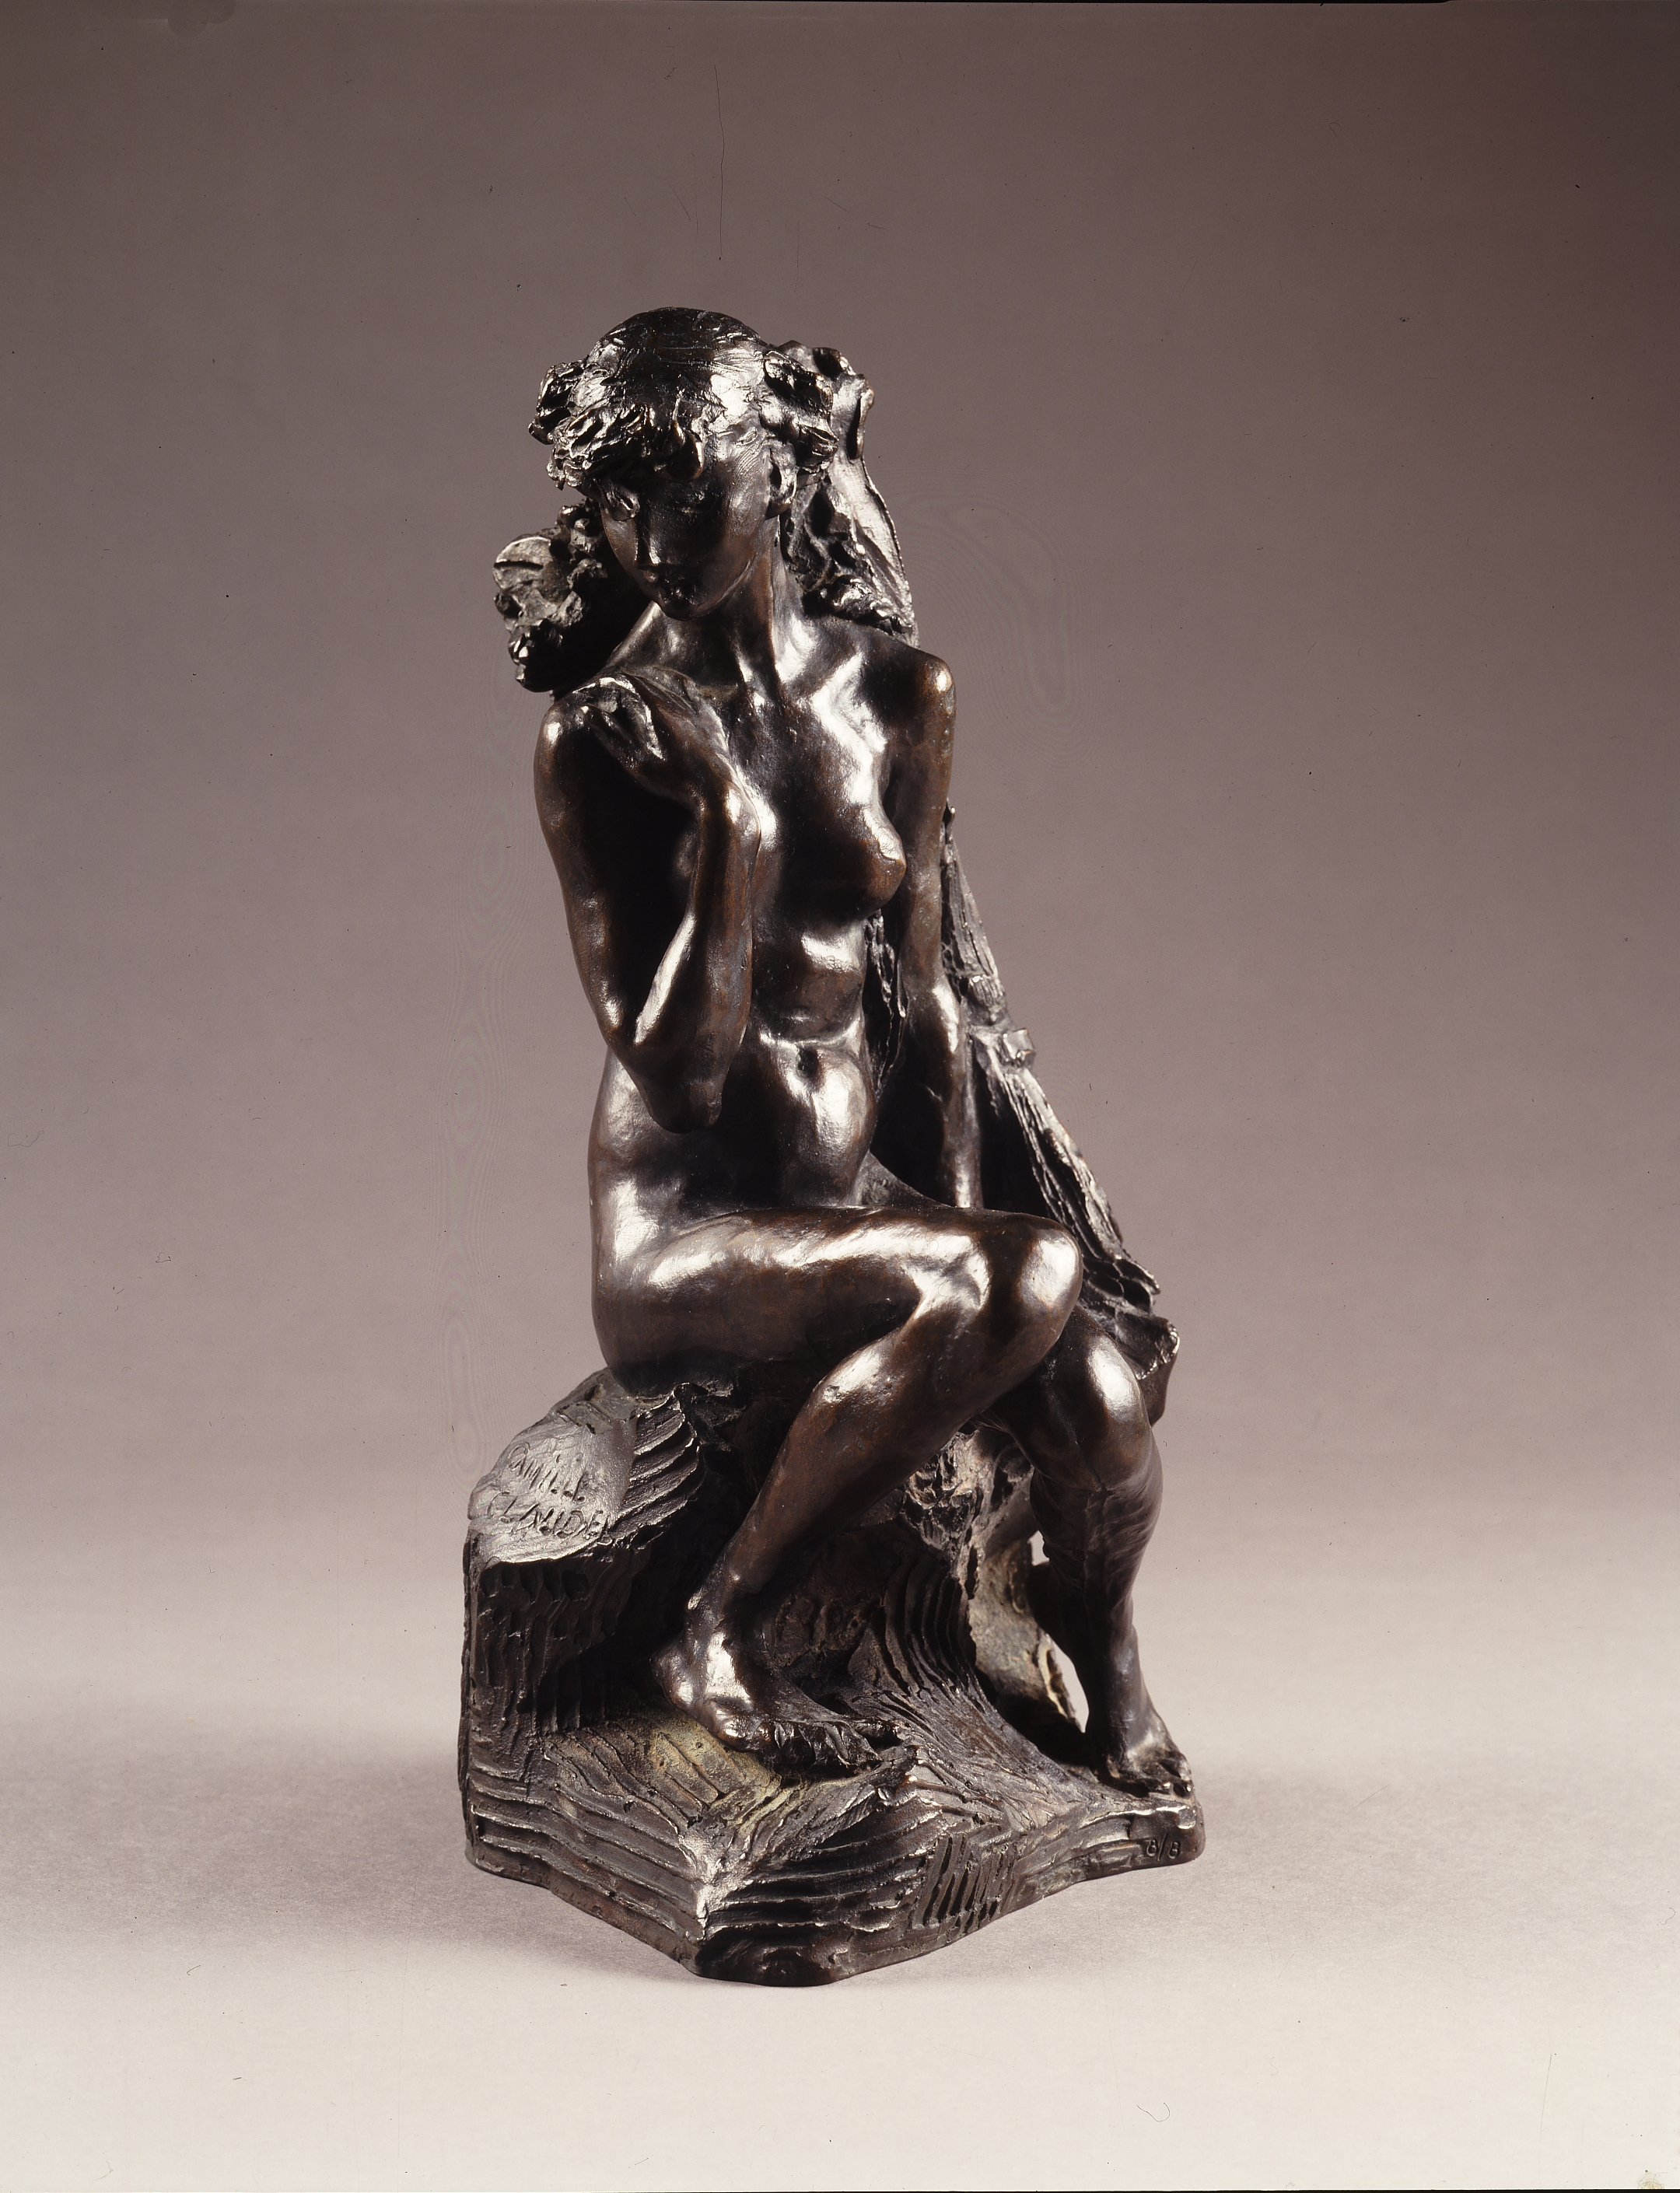 Camille Claudel's bronze sculpture depicting a naked young girl sitting on a rock with her left hand resting on her chest as she looks down toward the left.